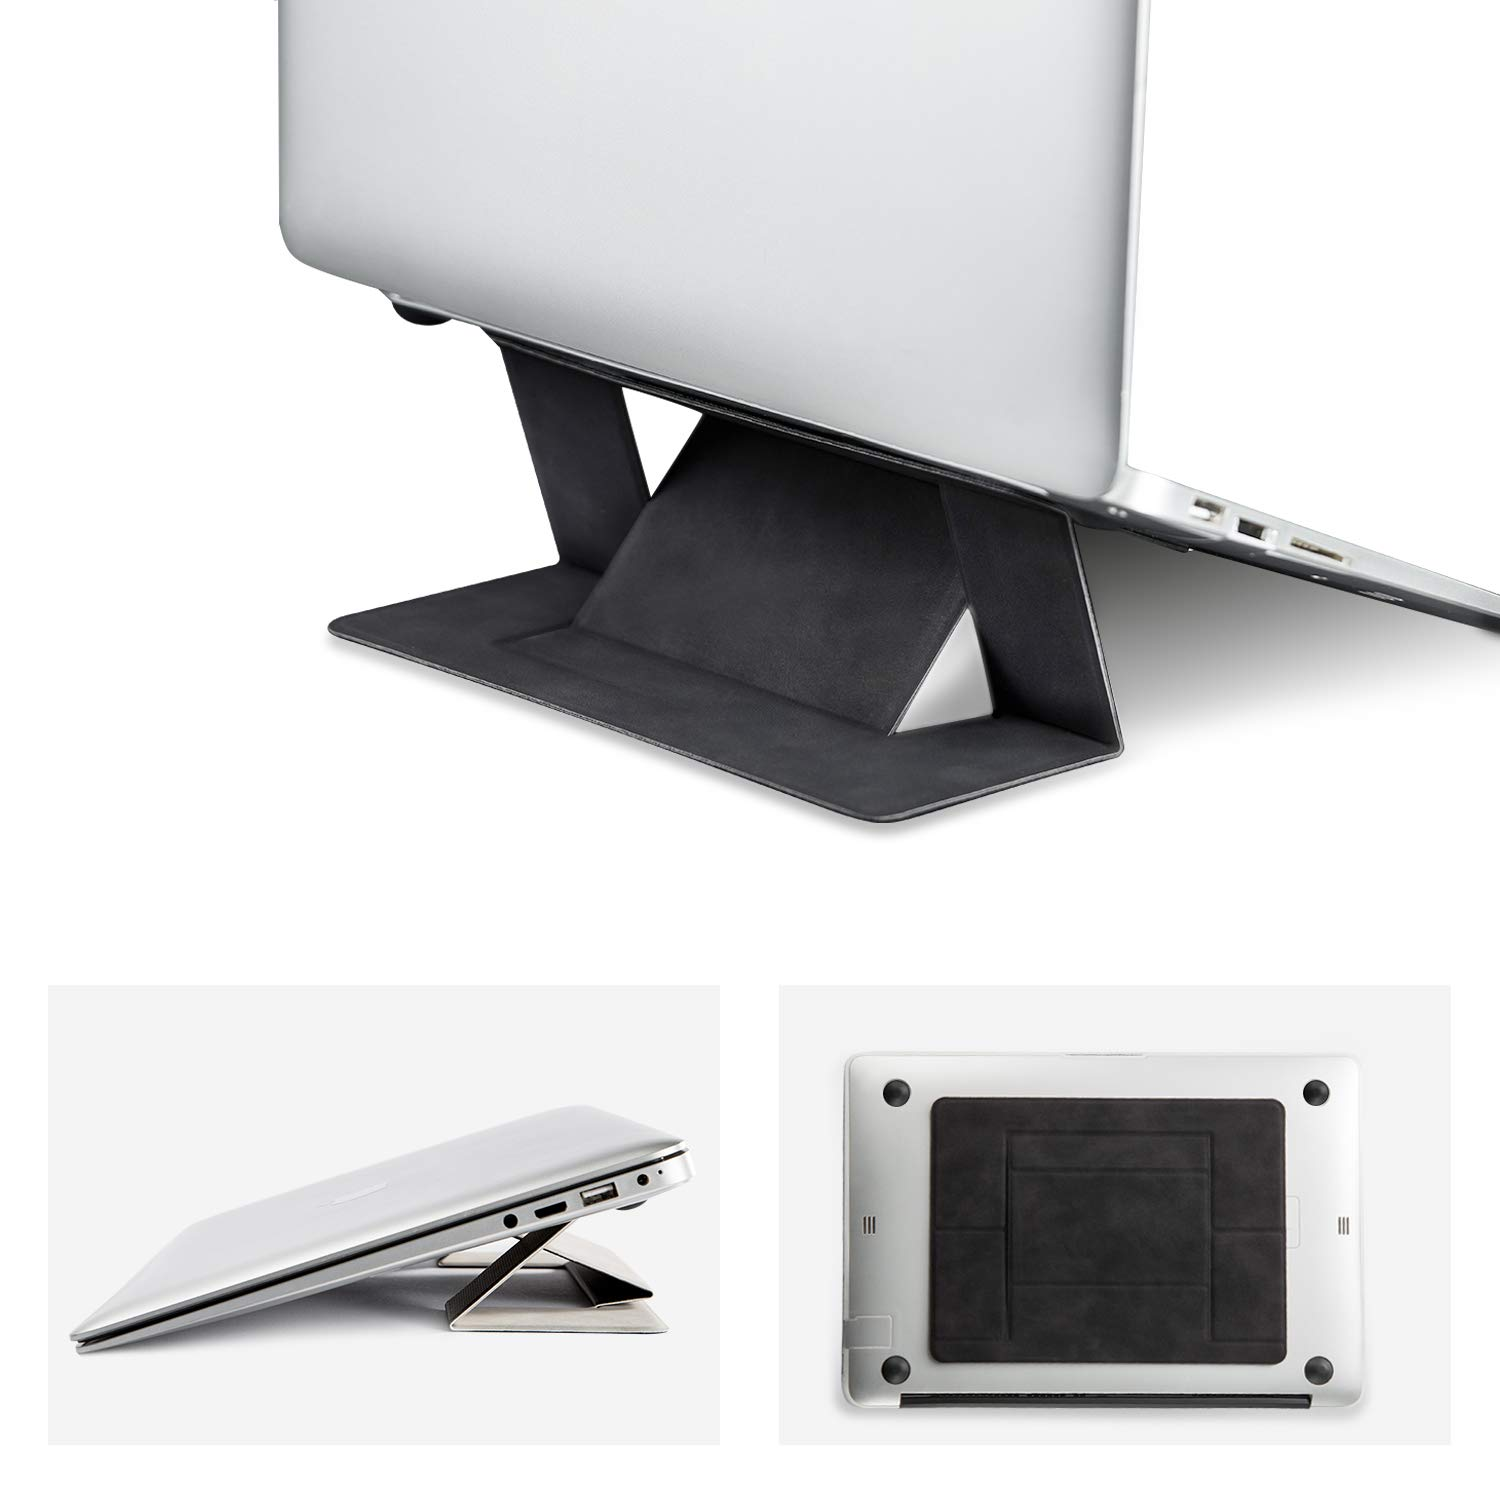 Invisible Laptop Stand Portable-RUCACIO Adhesive Laptop Kickstand Lightweight Stand Foldable Seamless Appendage of Computer Desktop Stand Holder Anti-Slide Fits Mac Book,Laptops,iPad, Tablet(Black)